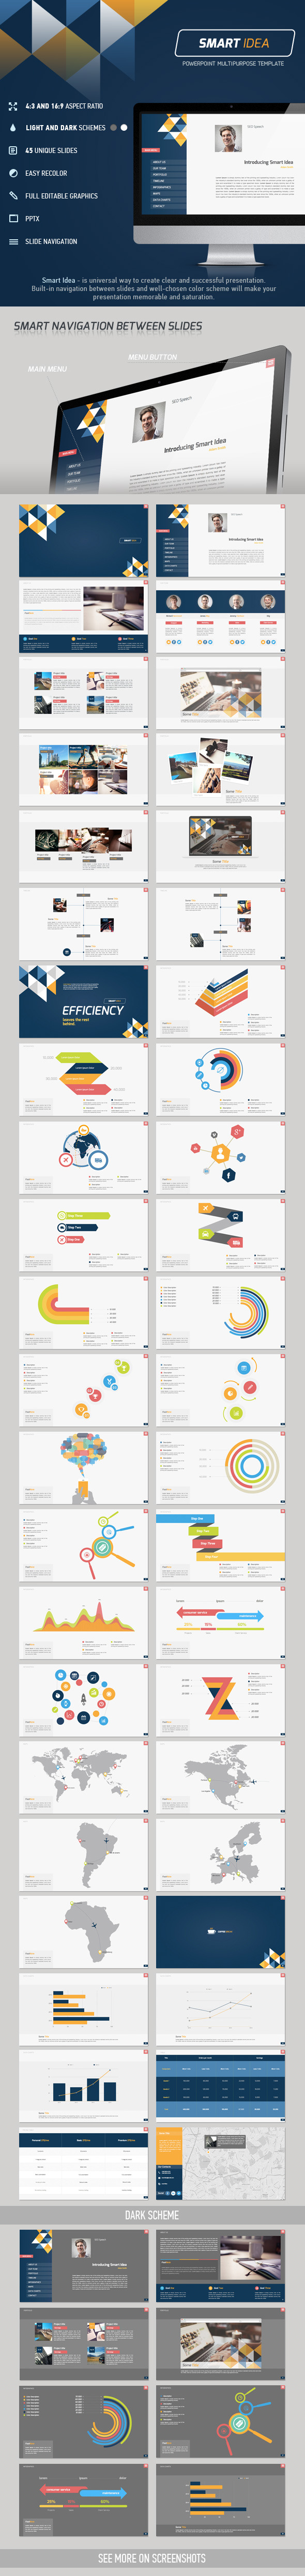 Smart Idea PowerPoint Template